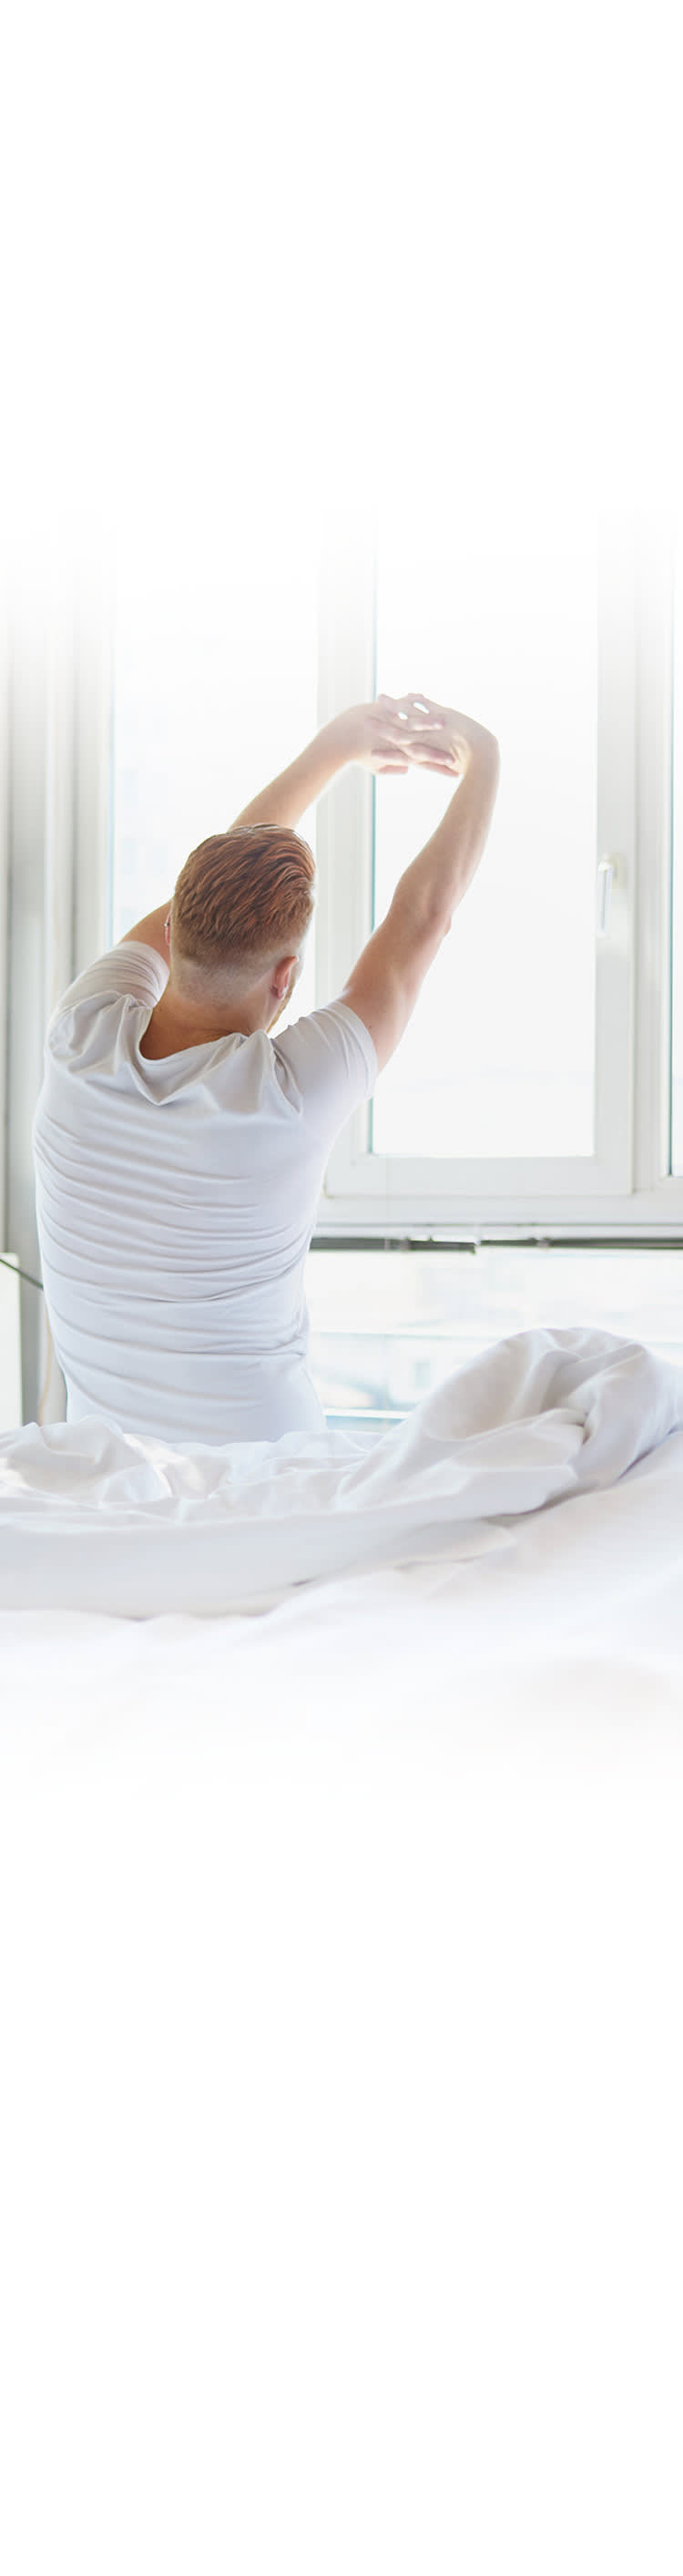 Man stretching as he gets out of bed